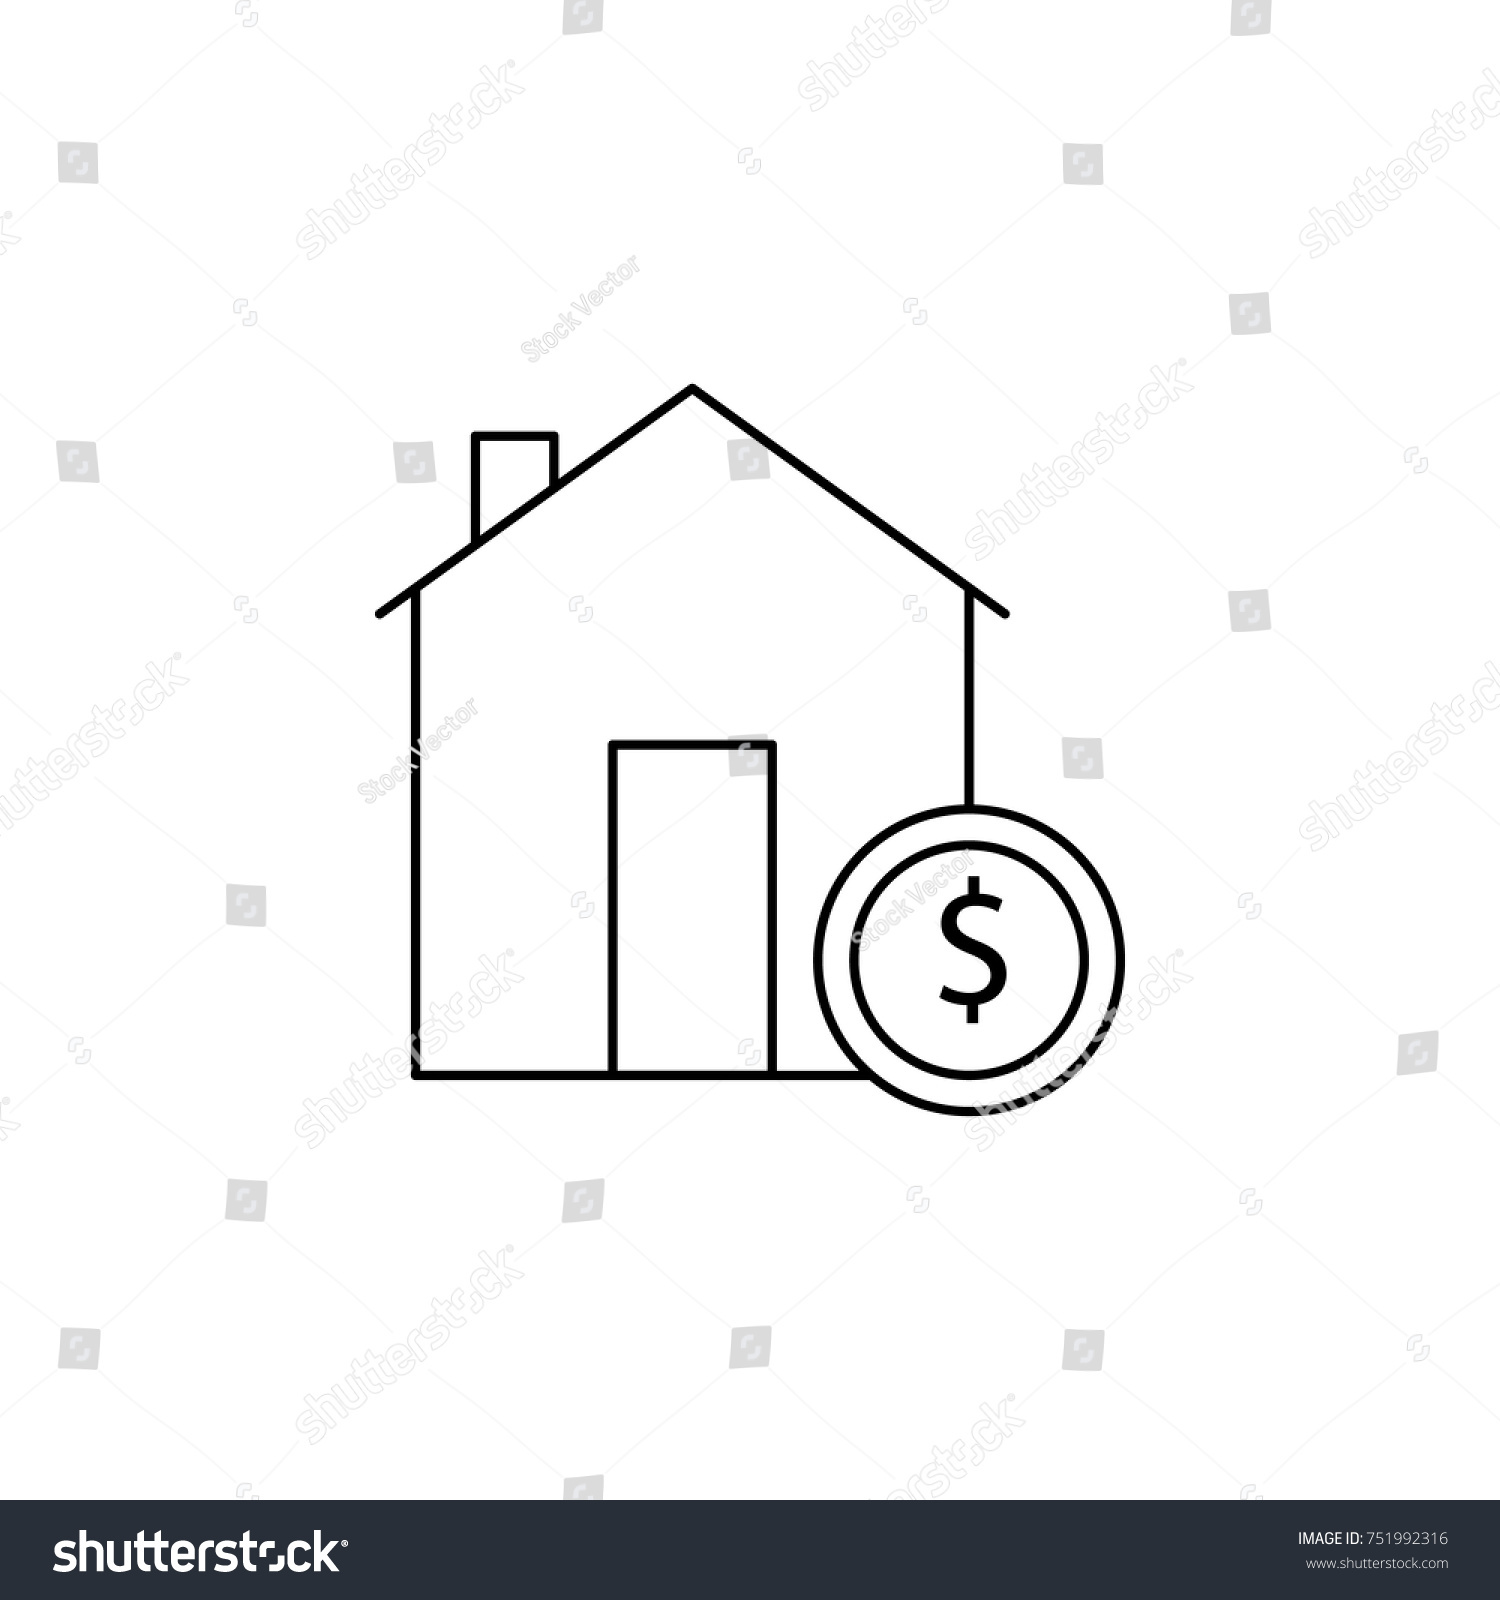 Investment property real estate real estate stock vector 751992316 investment property real estate real estate element premium quality graphic design signs biocorpaavc Image collections